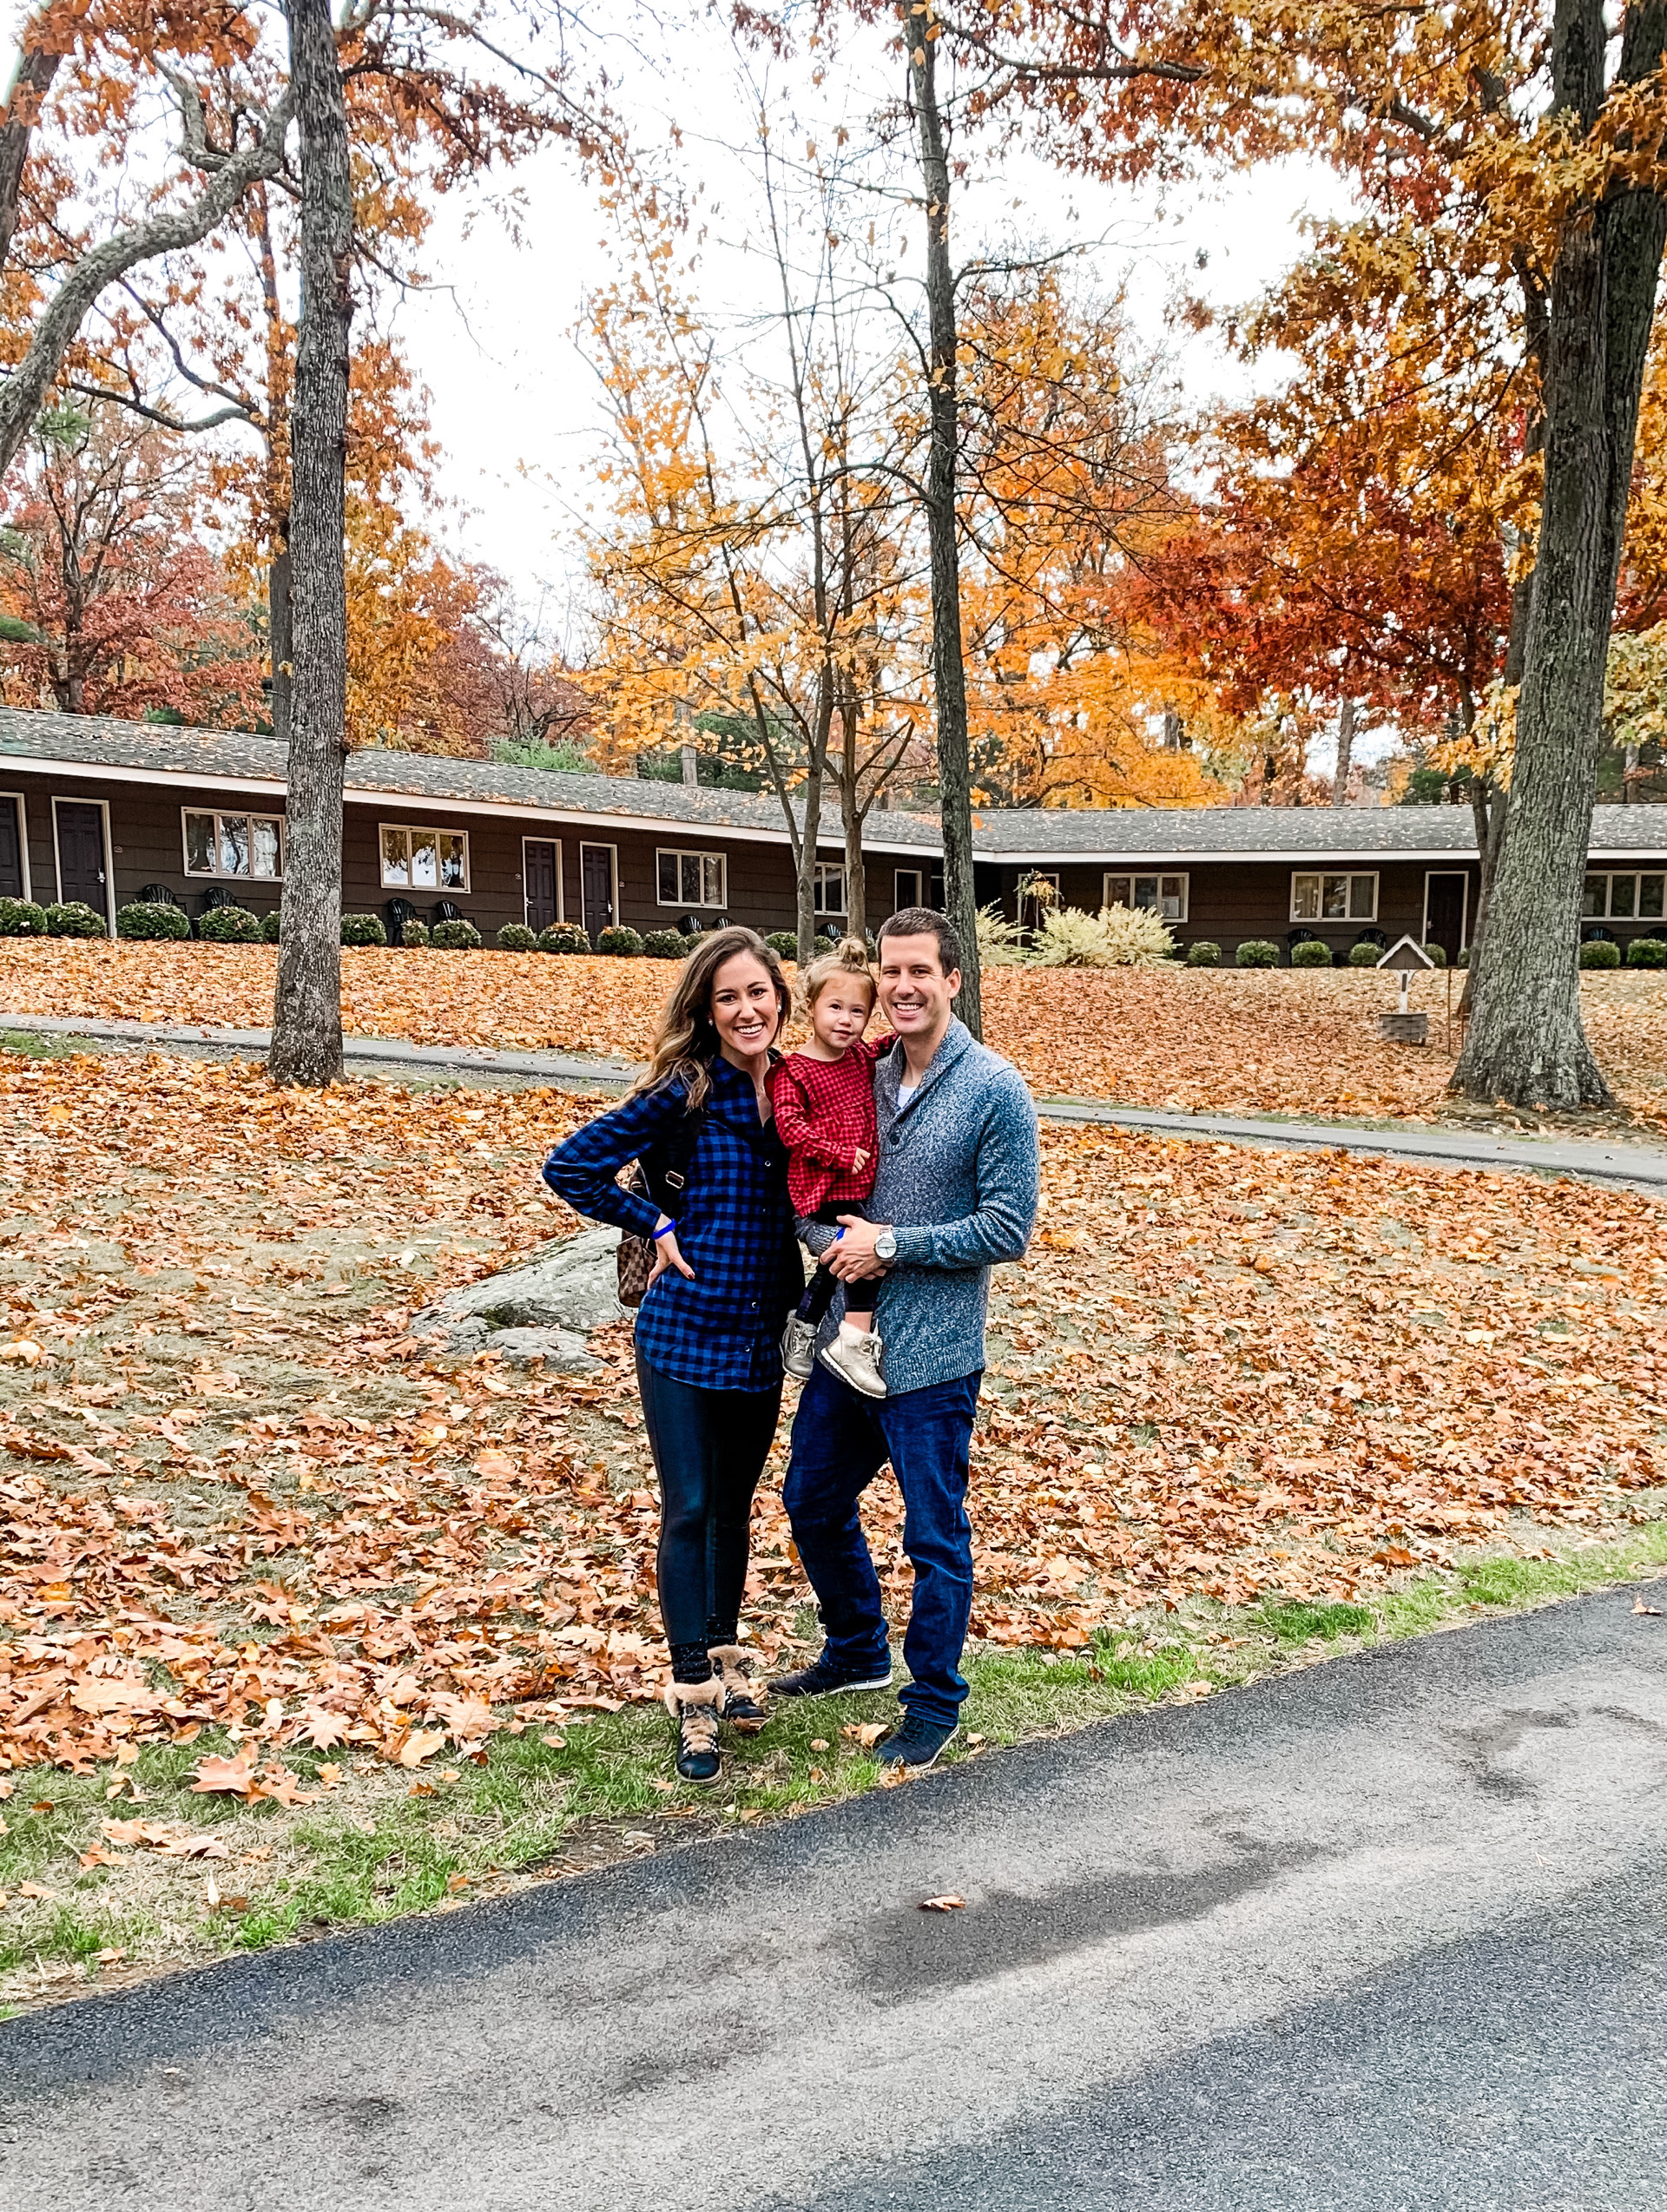 THE WOODLOCH RESORT - Resort Review + Trip Recap on Coming Up Roses